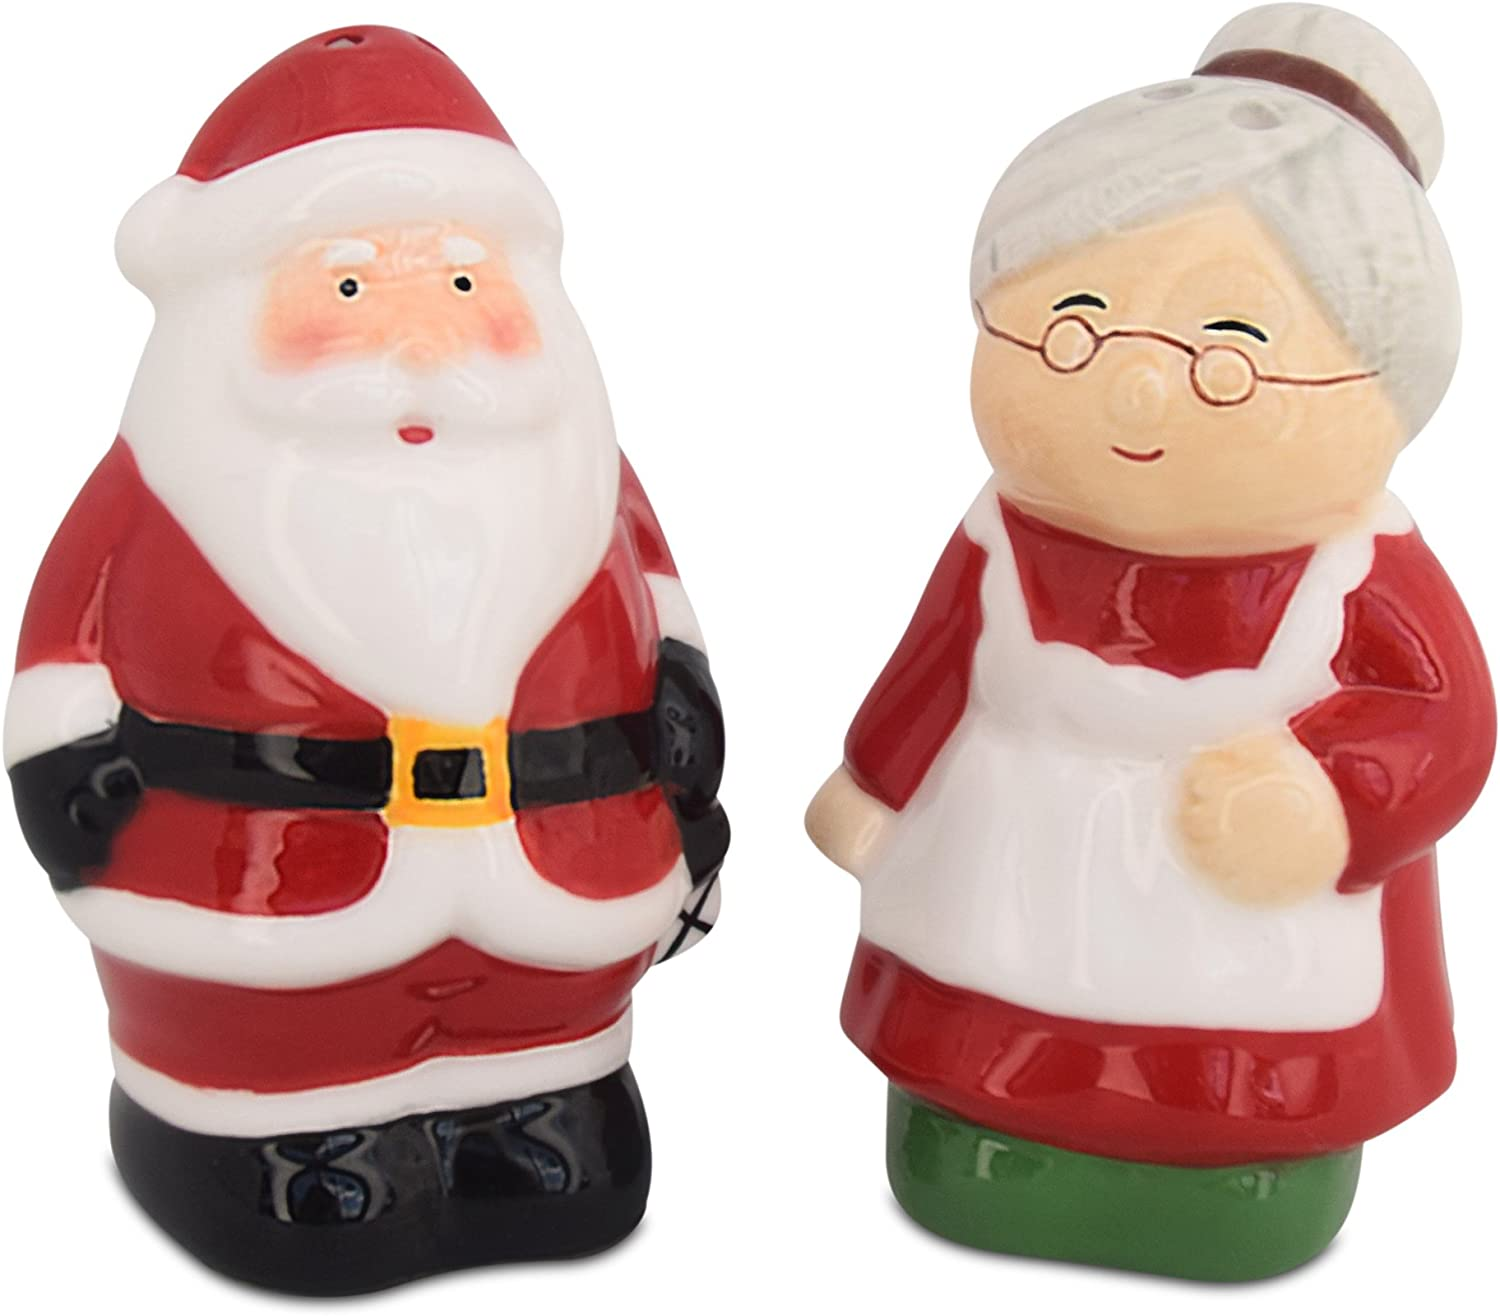 Christmas Salt and Pepper Shakers Santa /& Mrs Claus Holiday Ceramic Set Holiday Decor Barclay/'s Buys